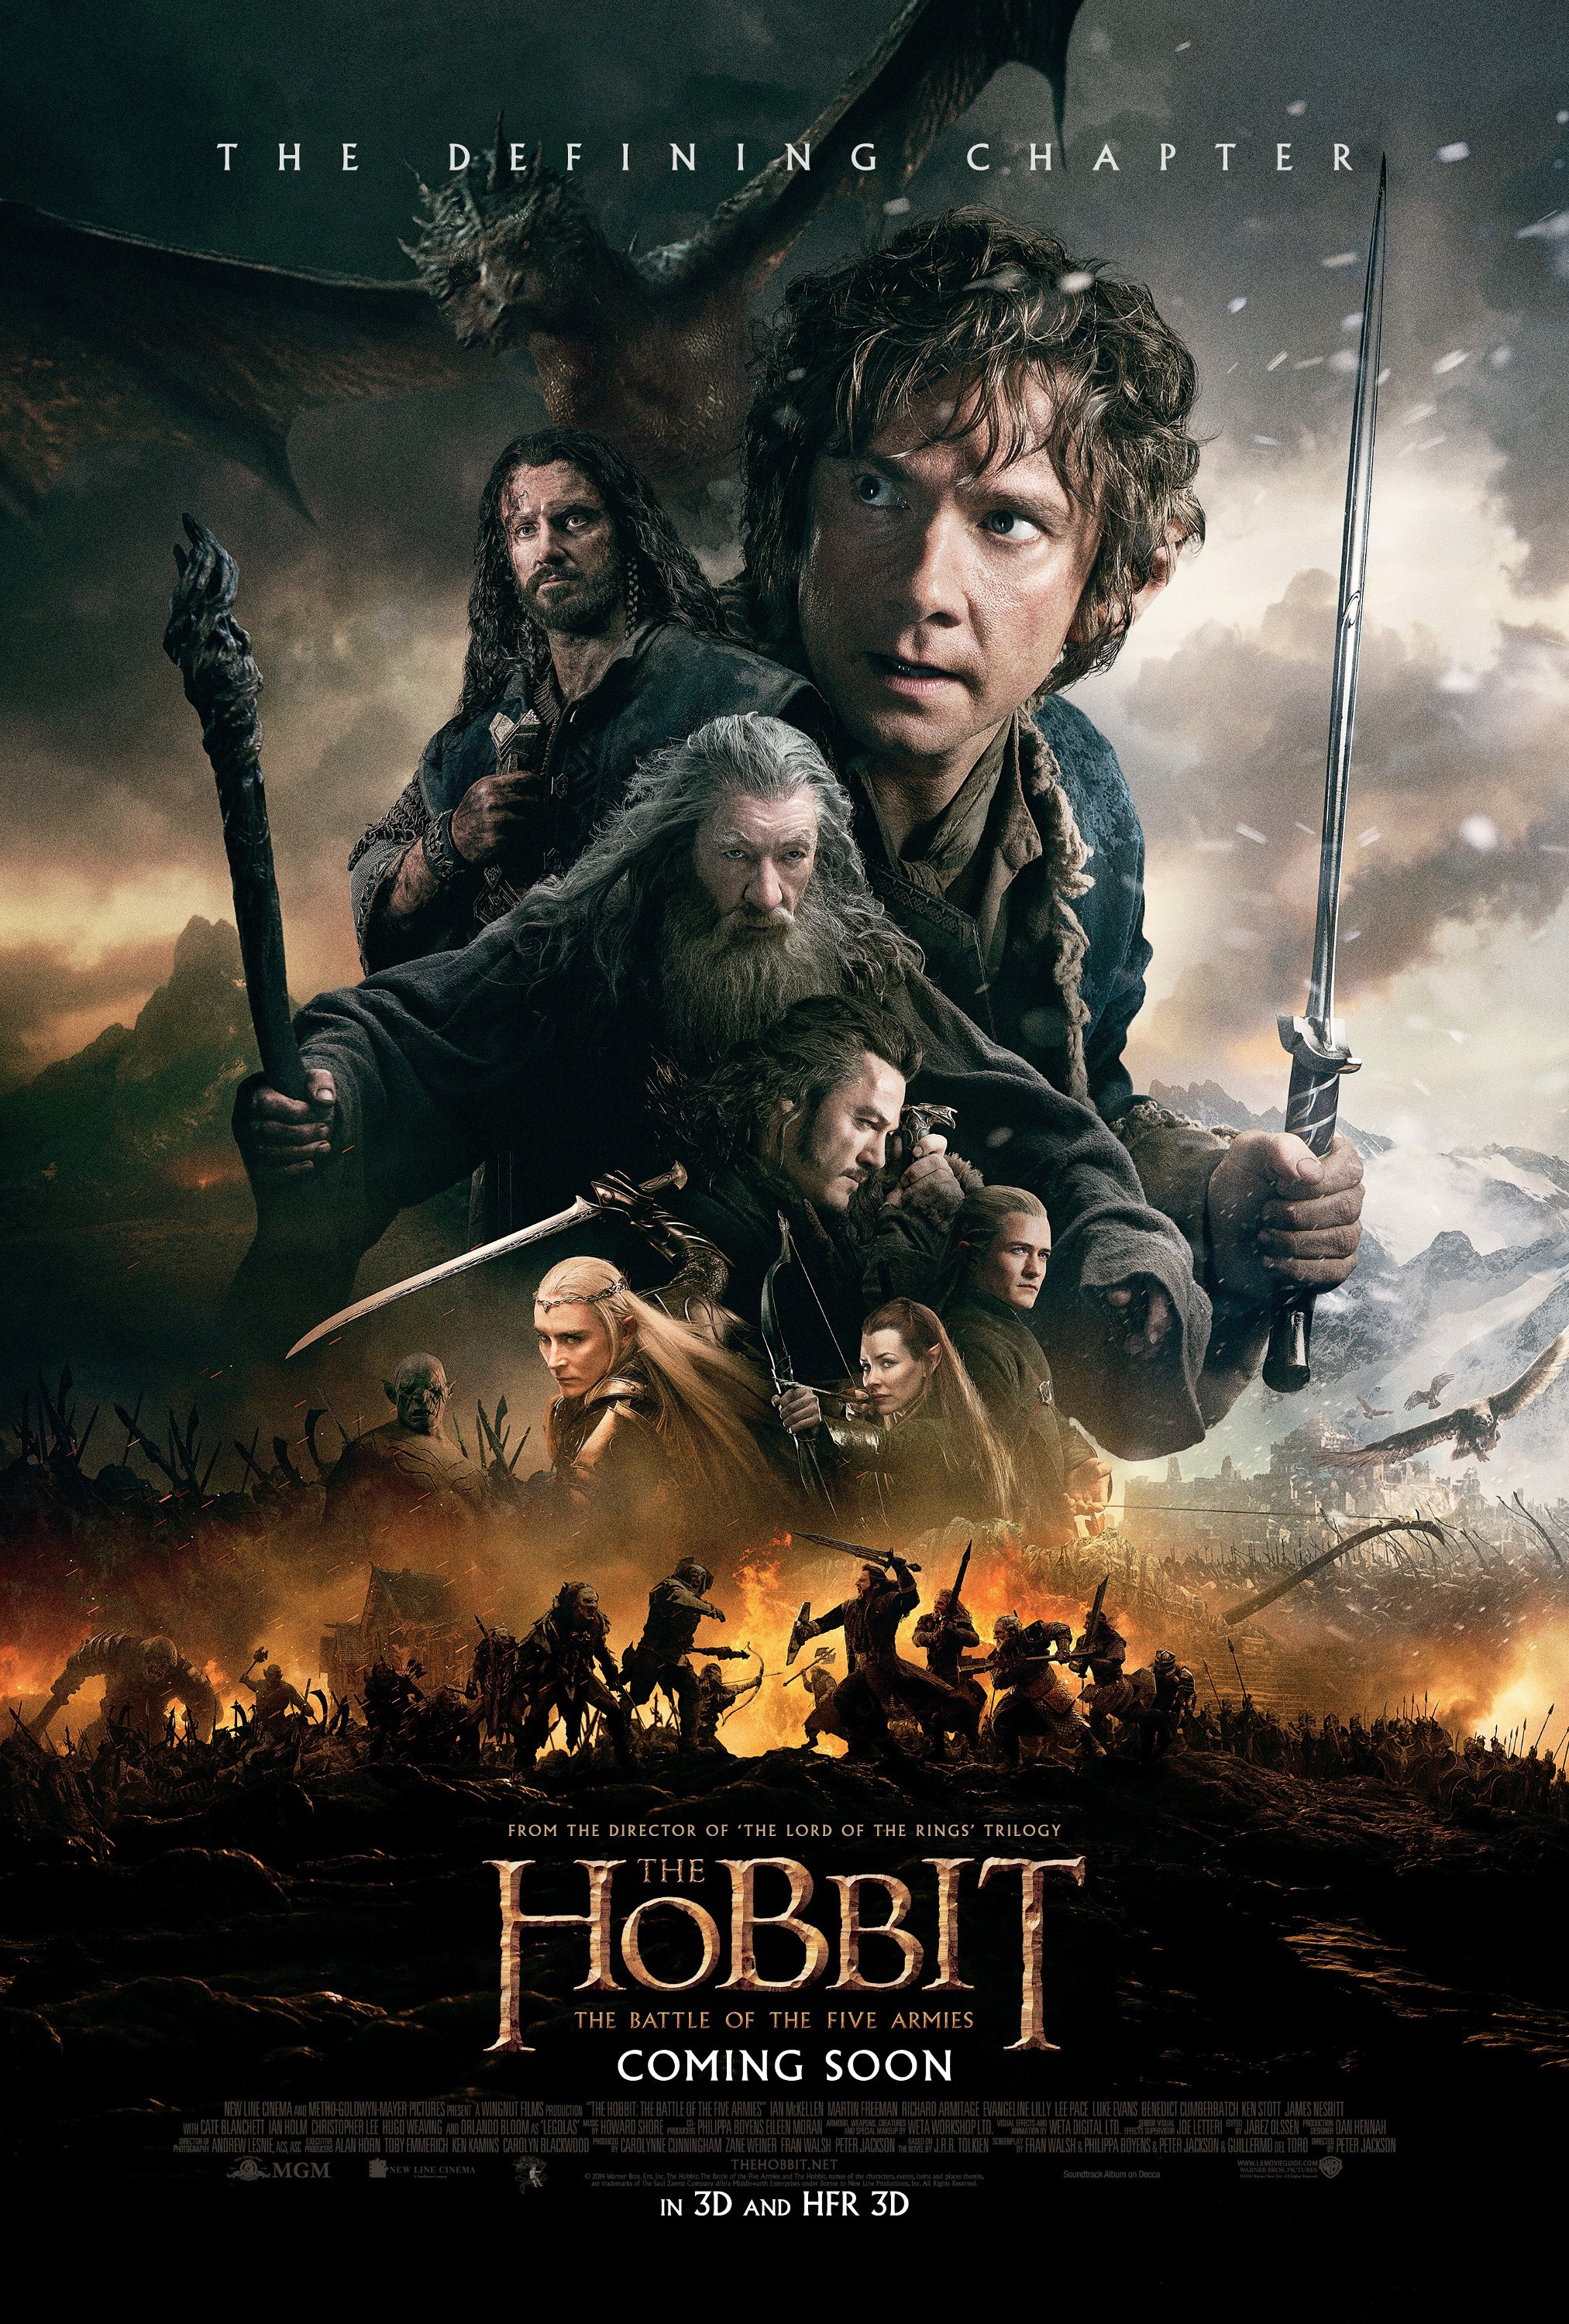 The Hobbit - The Battle of the Five Armies theatrical teaser poster